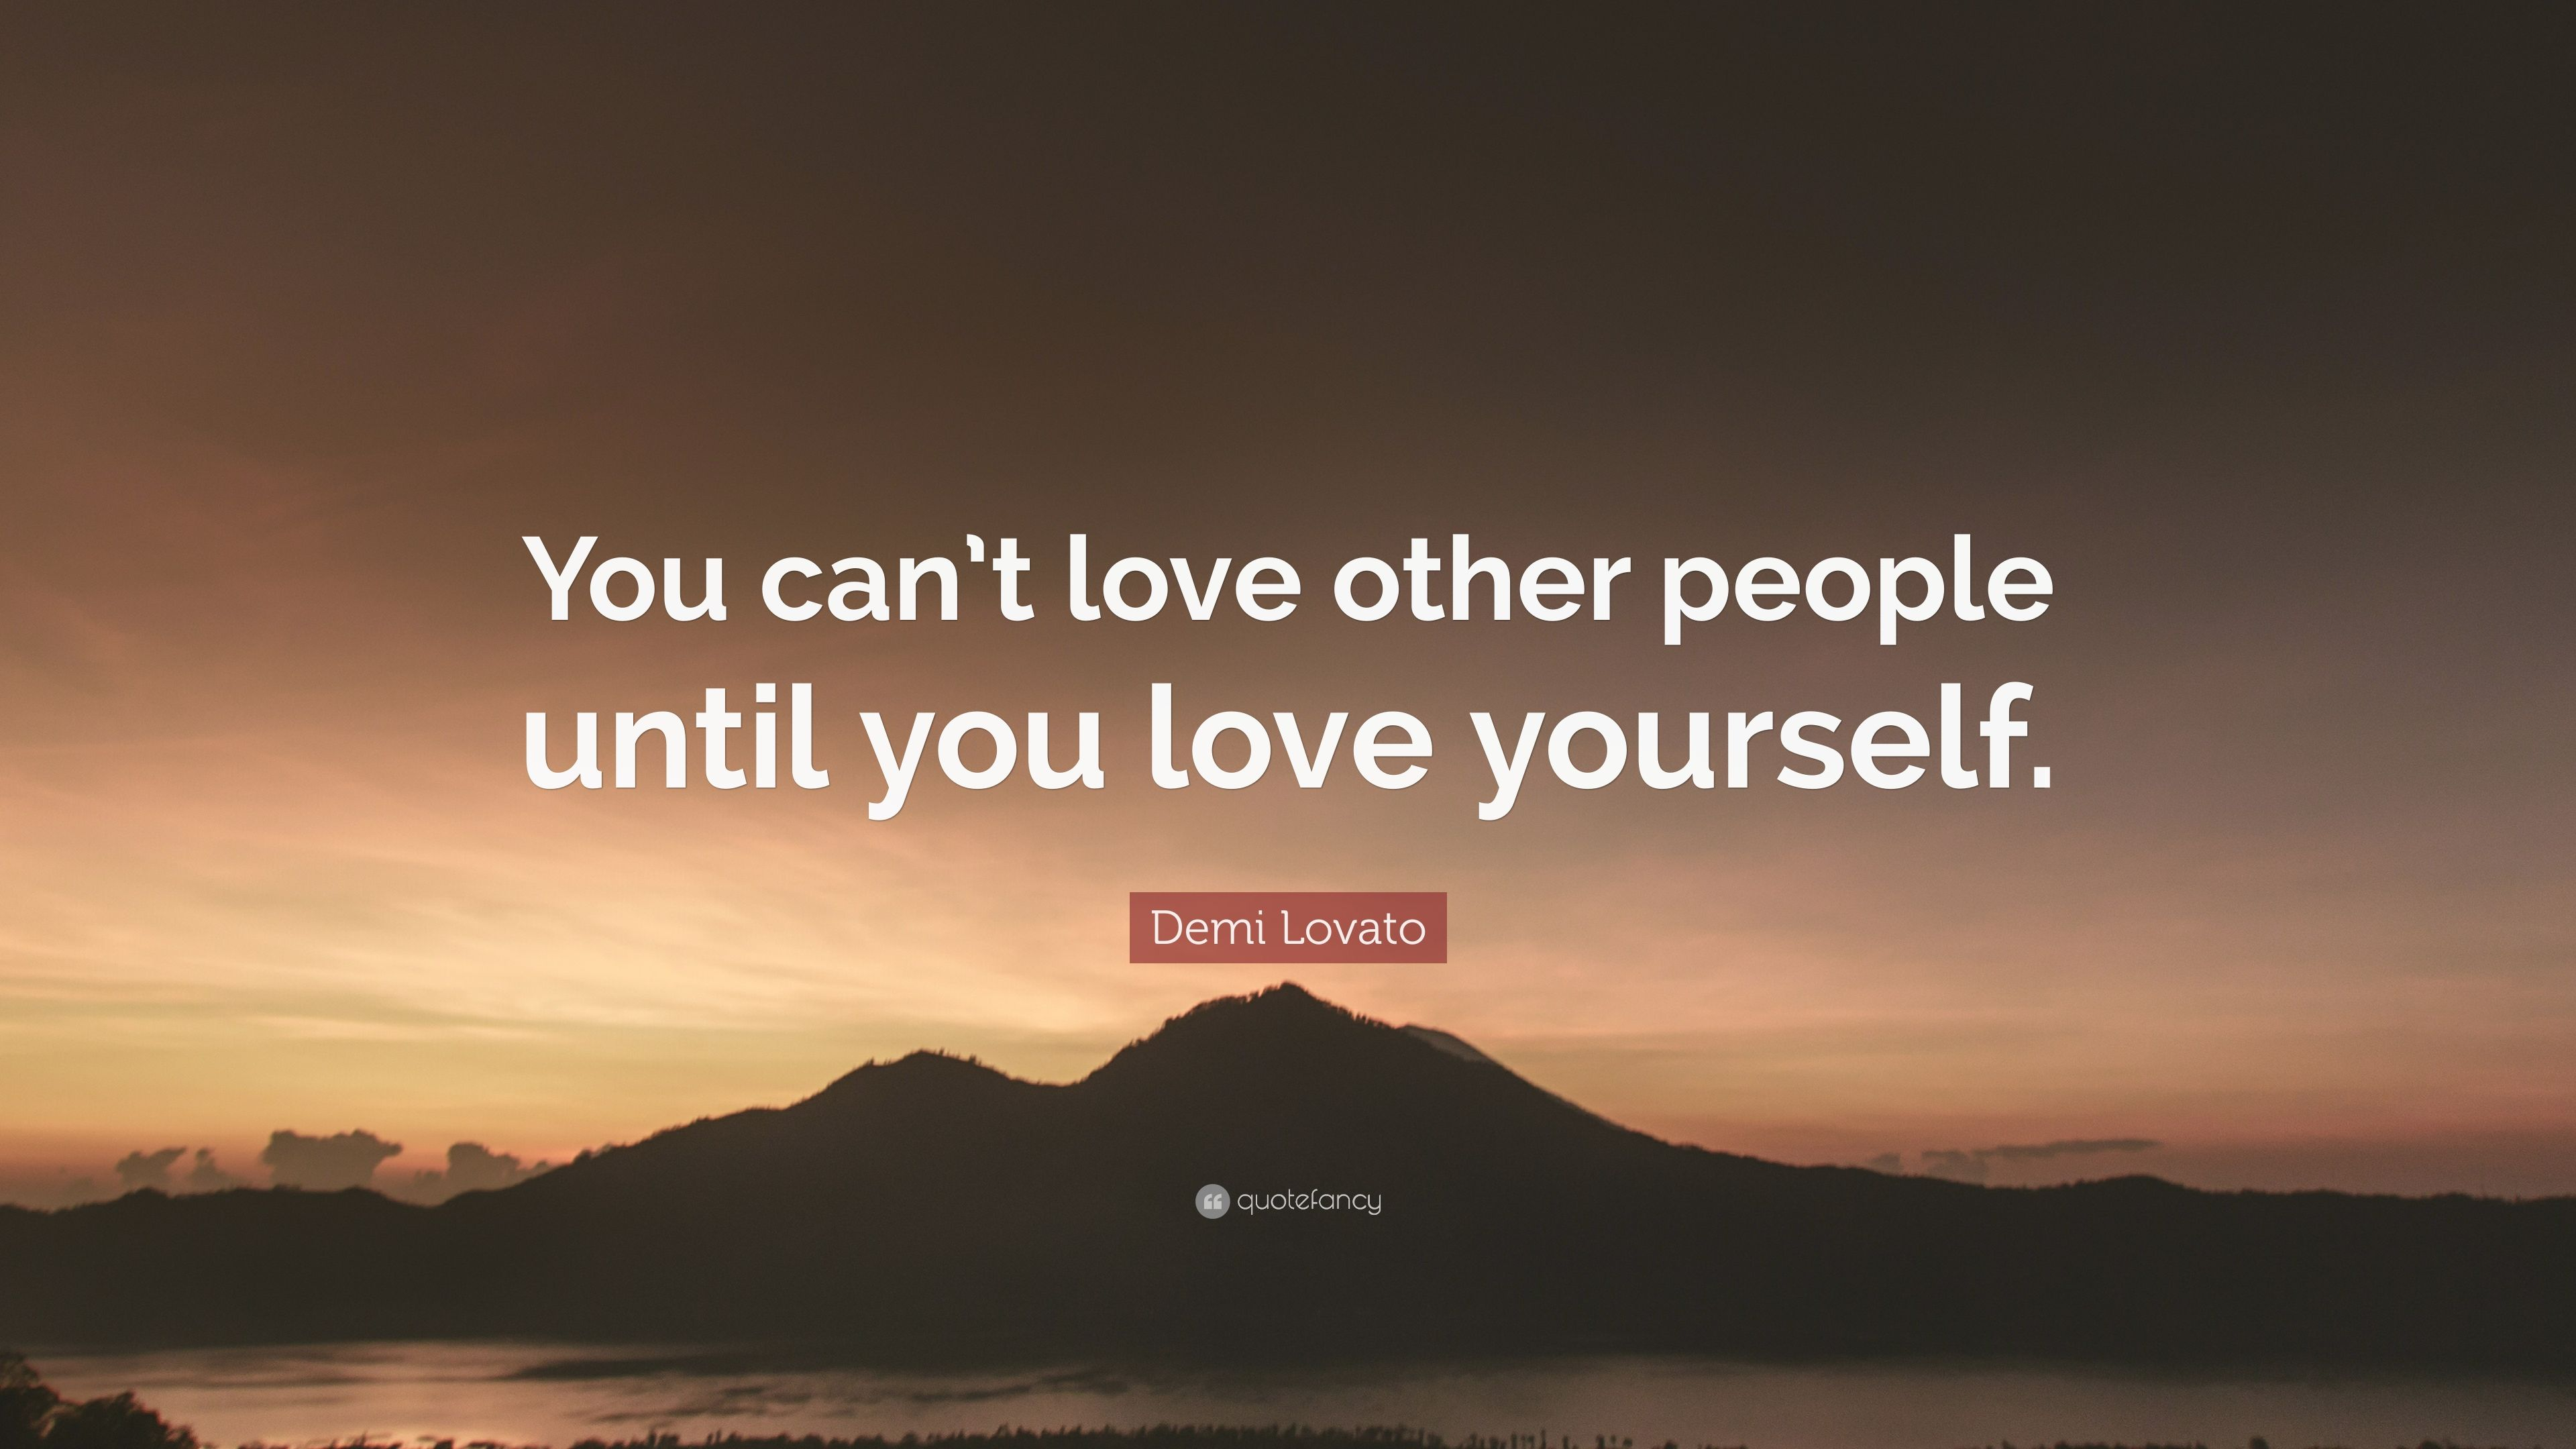 Demi Lovato Quote: You cant love other people until you